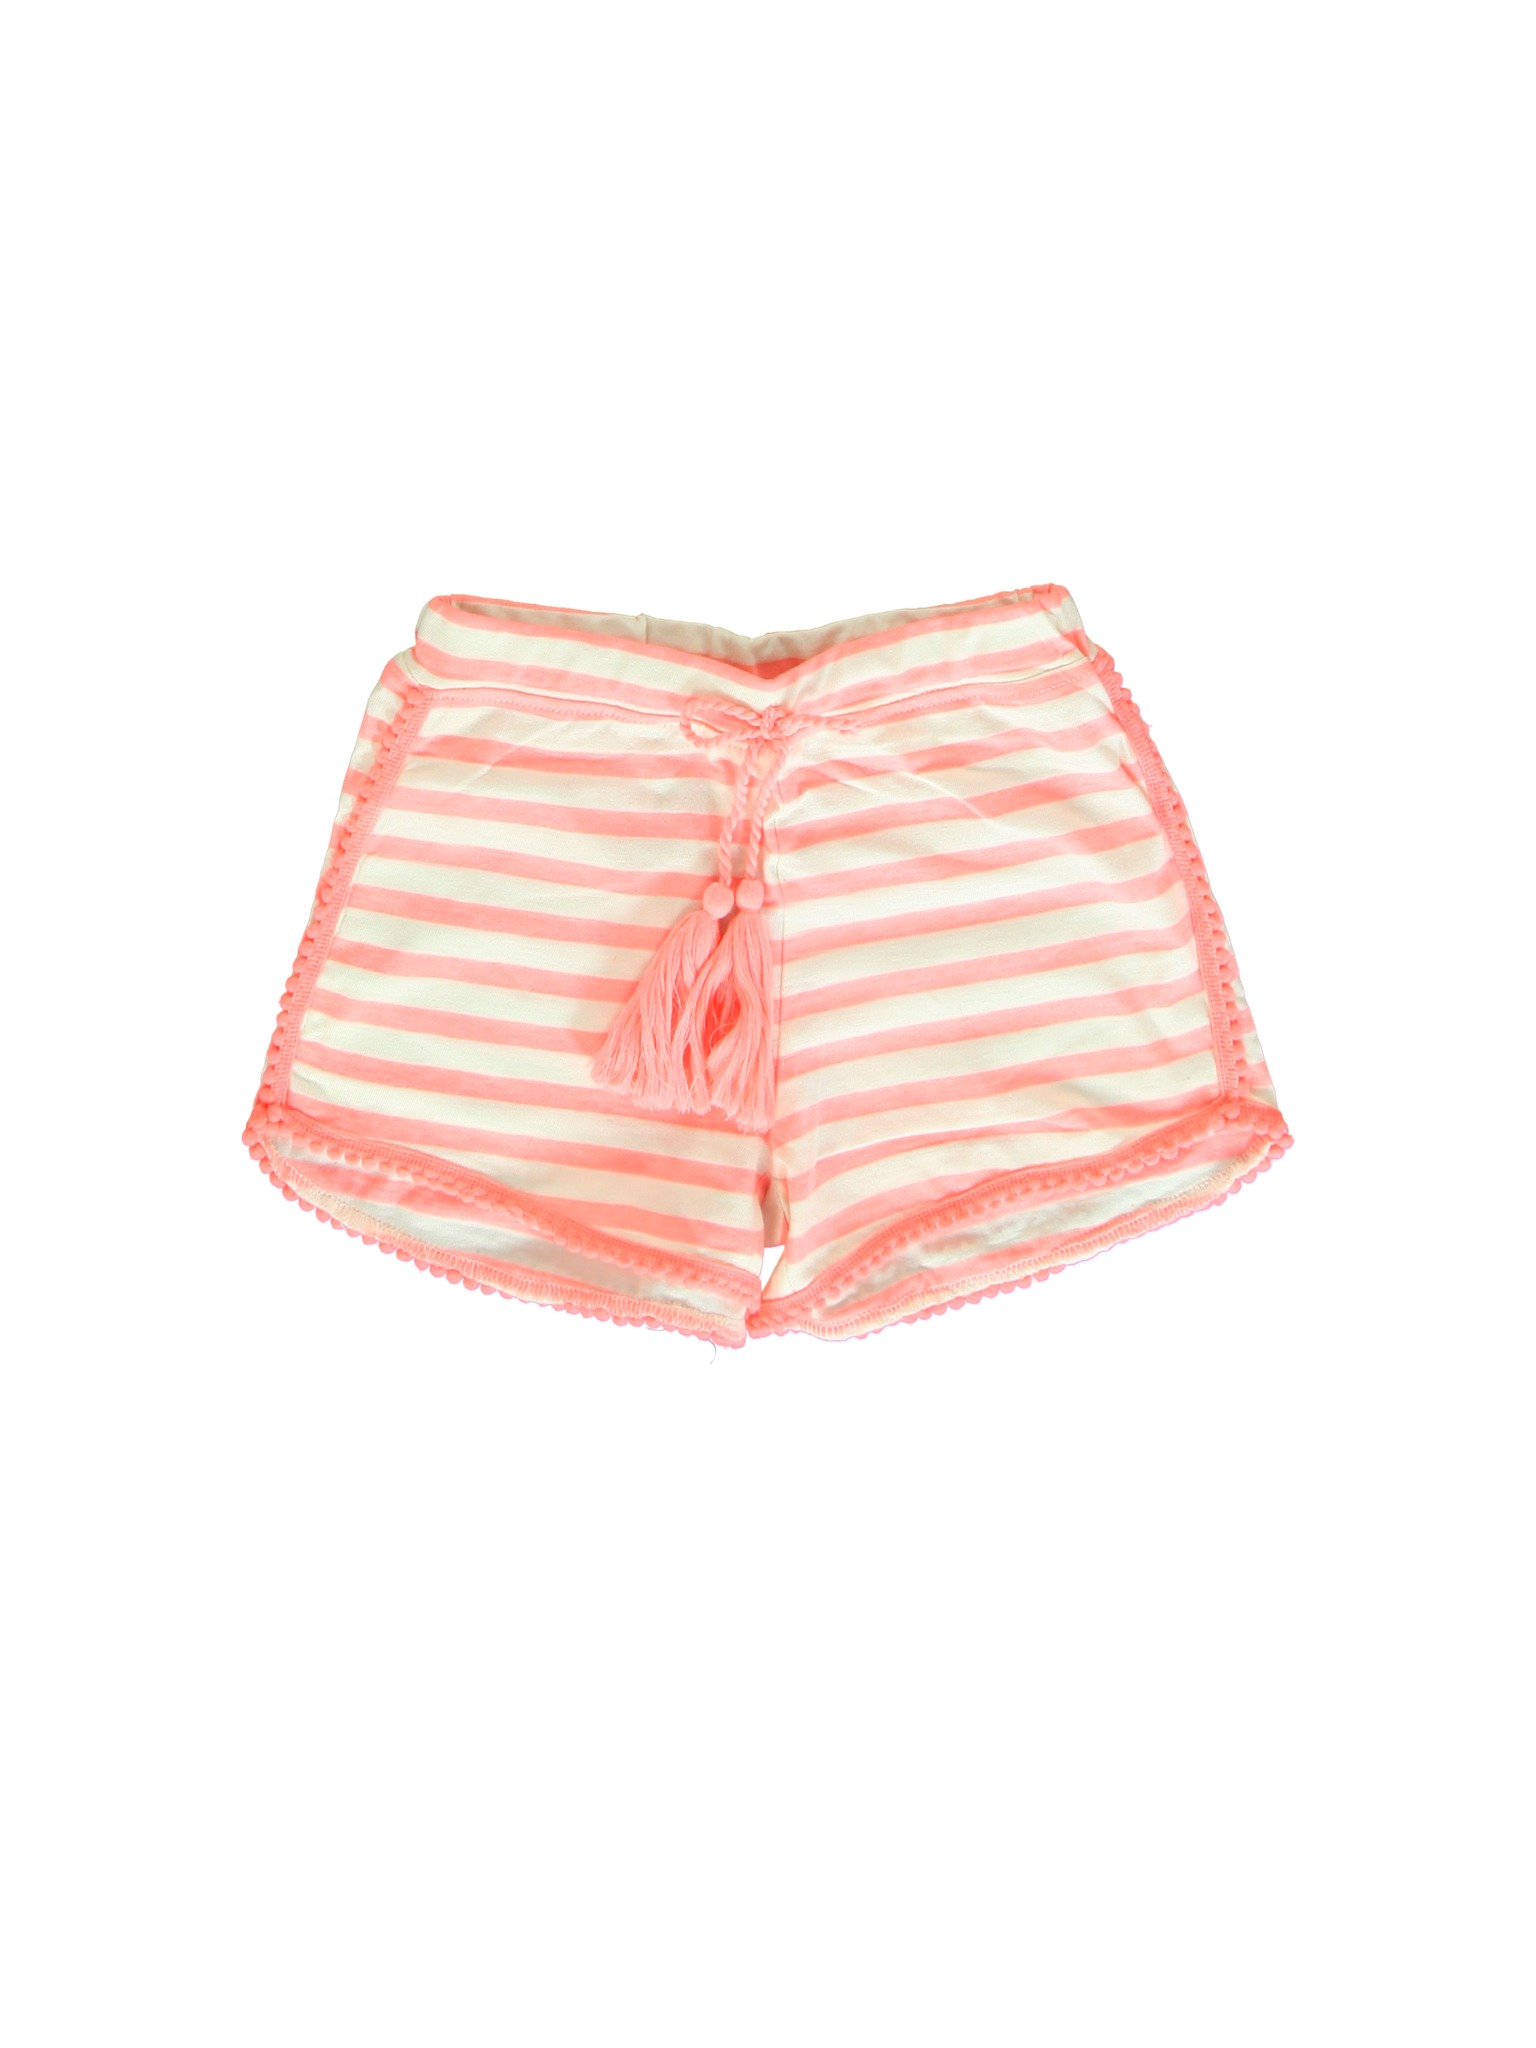 All Brands | Summerproducts Small Girls | Shorts | 12 pcs/box